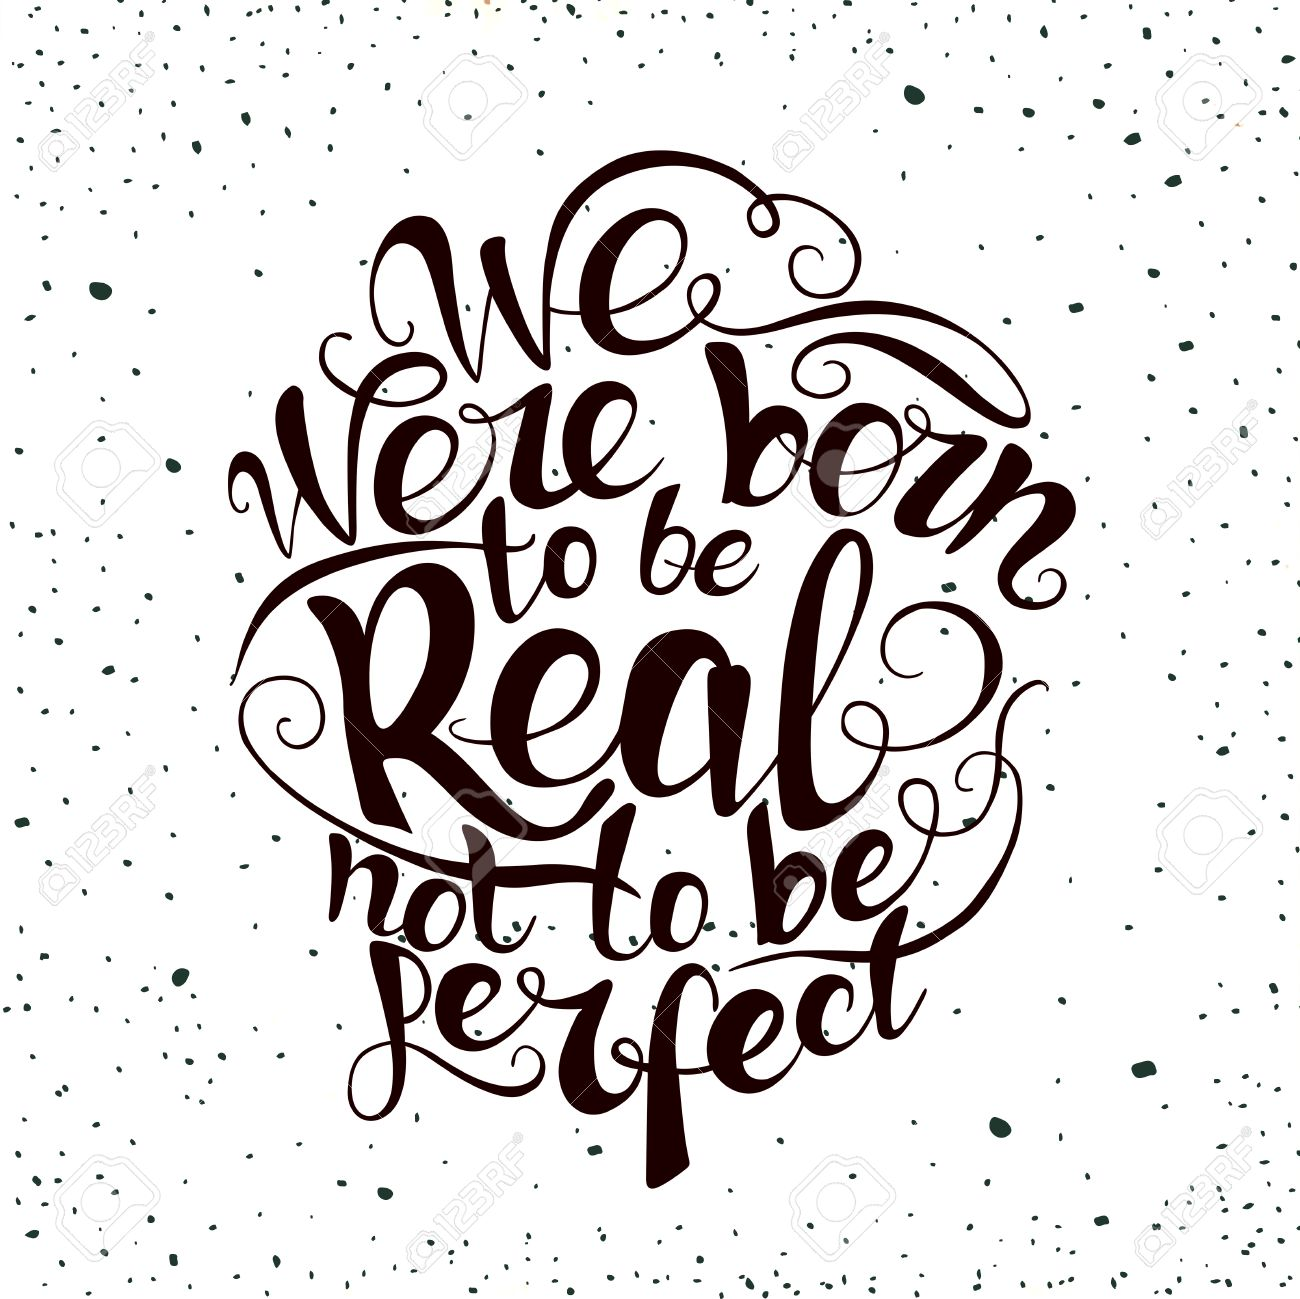 stock photo we were born to be real not to be perfect custom hand lettering apparel t shirt print design typographic composition phrase quote poster